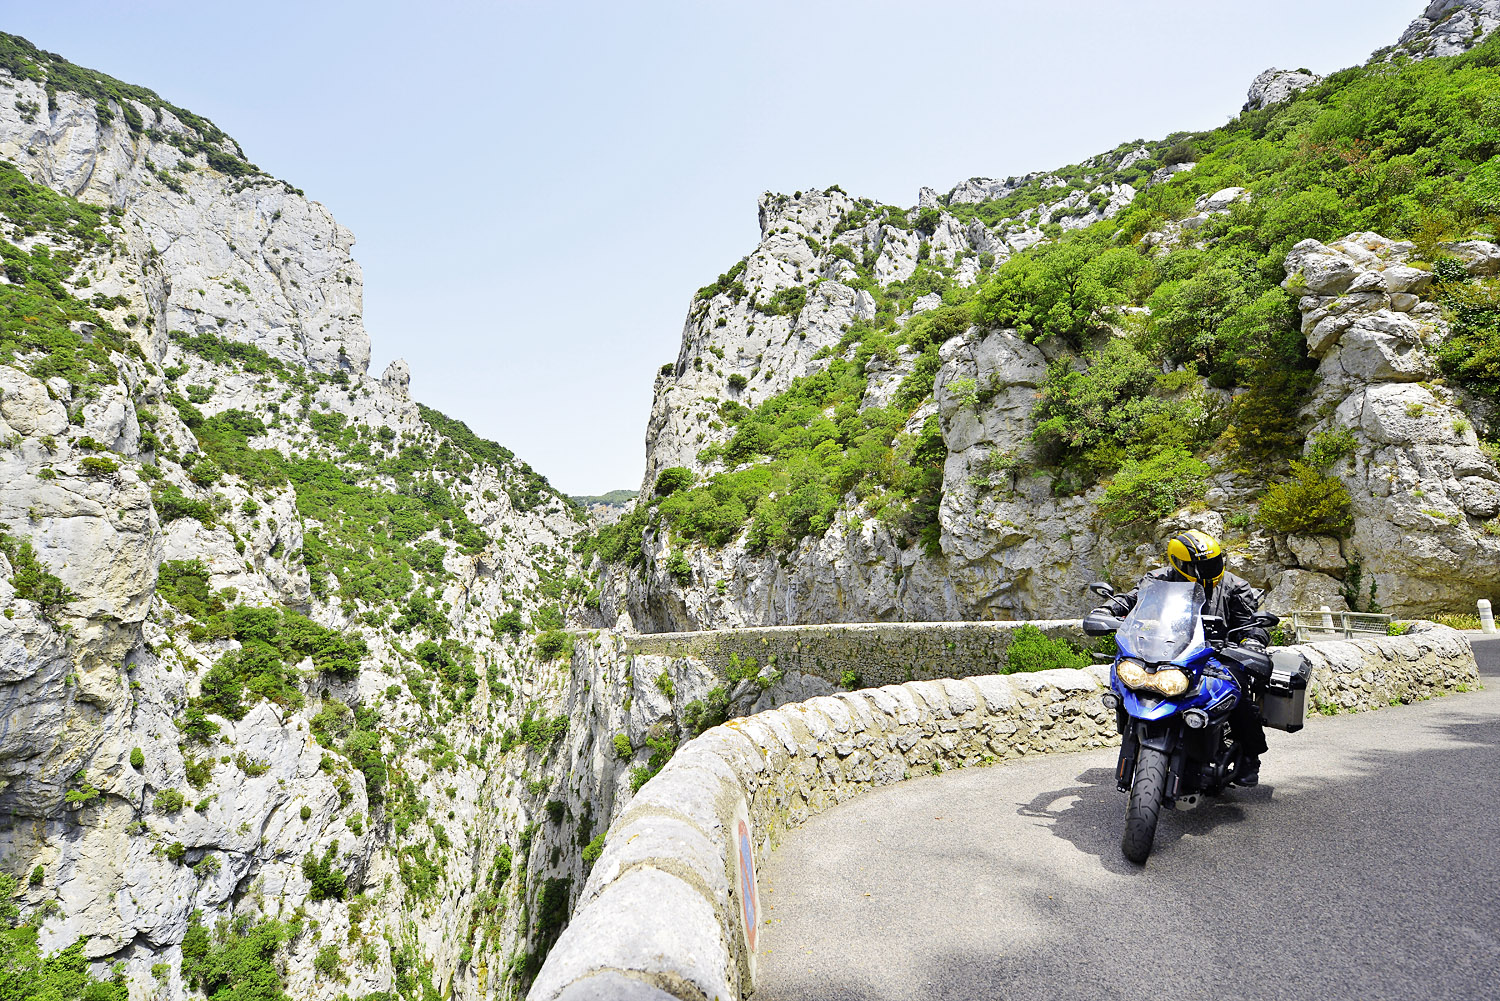 There's more to the Pyrenees than peaks and passes: this is the Gorges de Galamus